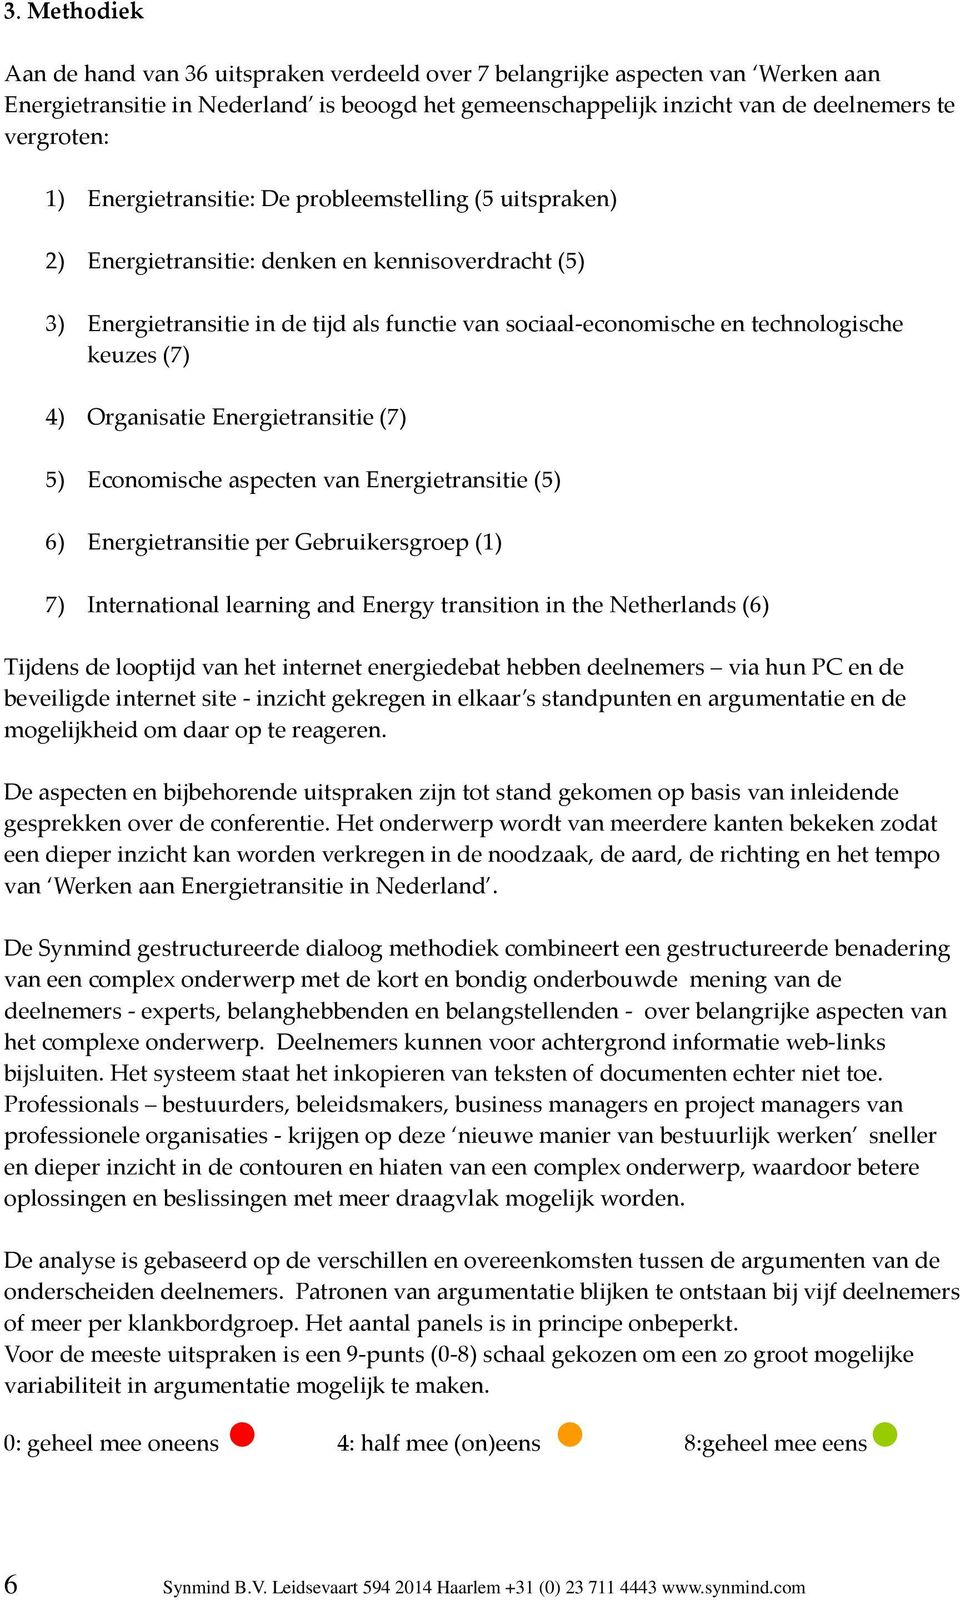 (7) 4) Organisatie Energietransitie (7) 5) Economische aspecten van Energietransitie (5) 6) Energietransitie per Gebruikersgroep (1) 7) International learning and Energy transition in the Netherlands